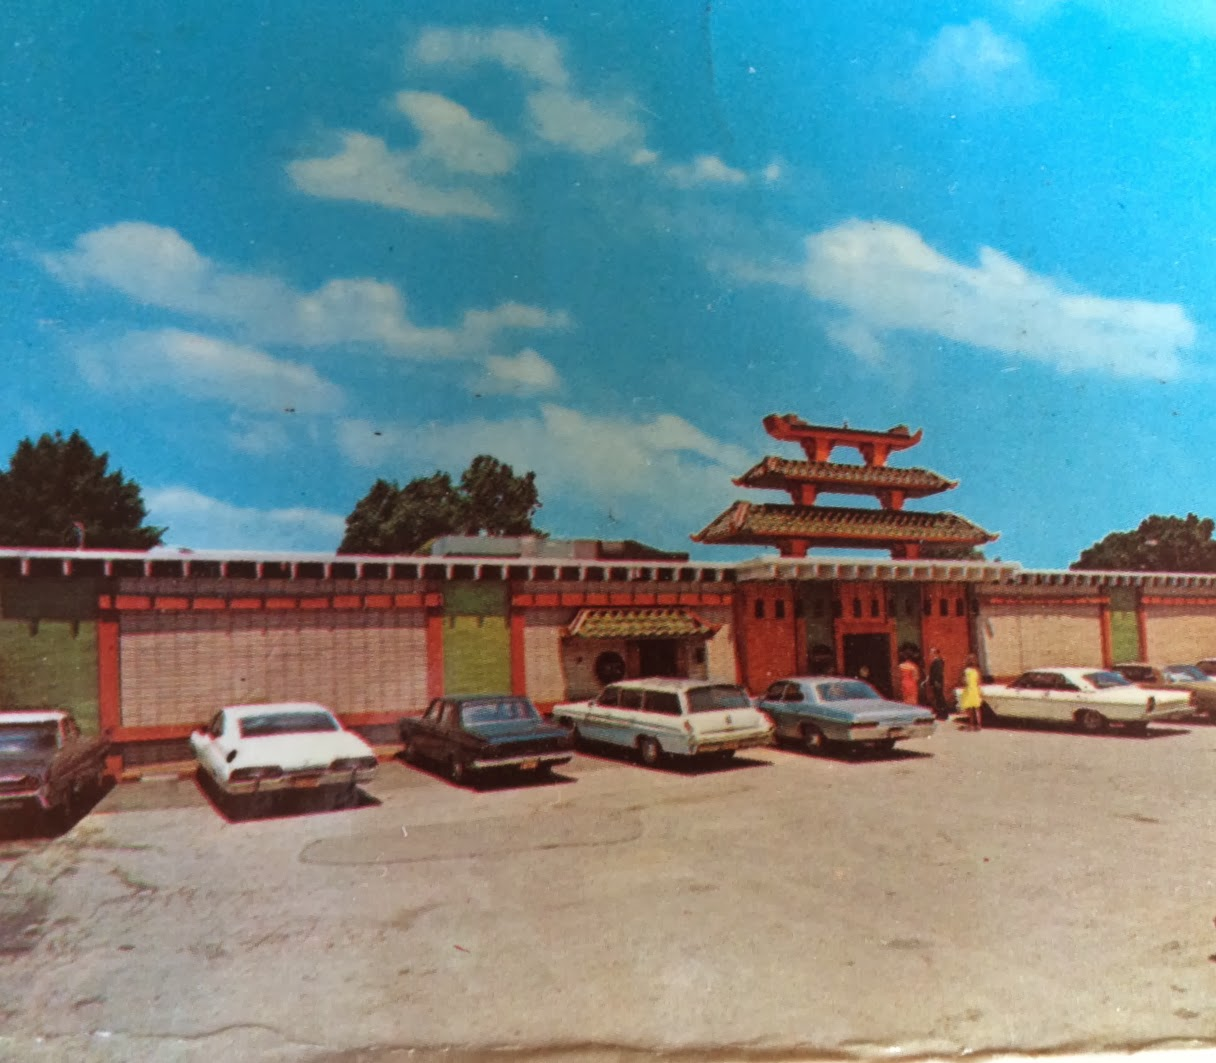 CHARLOTTE EATS: The Oriental Restaurant **HALL OF FAME EATERY**